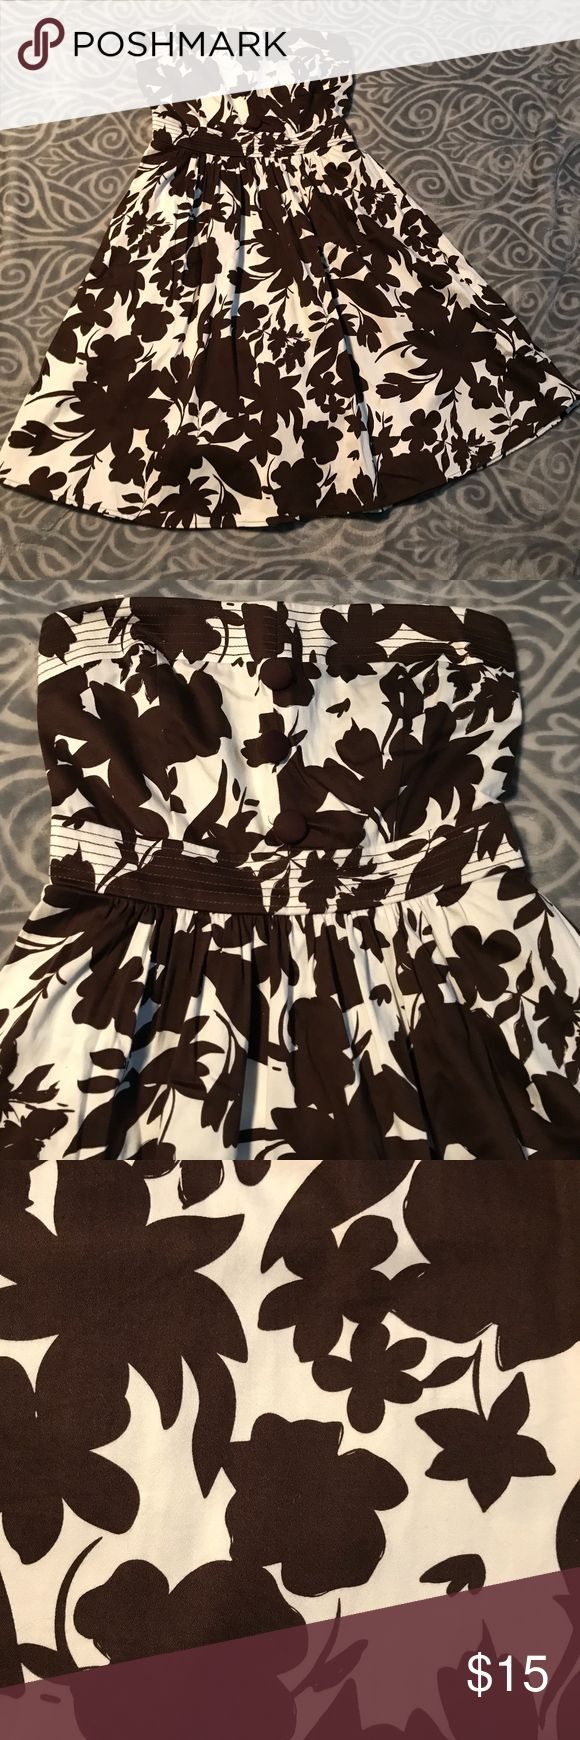 Brown and white floral strapless dress B. Smart brown and white floral strapless dress. Three decorative buttons run down the middle of the chest area. There are two sashes attached to the waist that can tie in the back. Soft, sturdy fabric. Size 4. Transitions well into fall and winter with a cardigan and knee high boots. B.Smart Dresses Strapless